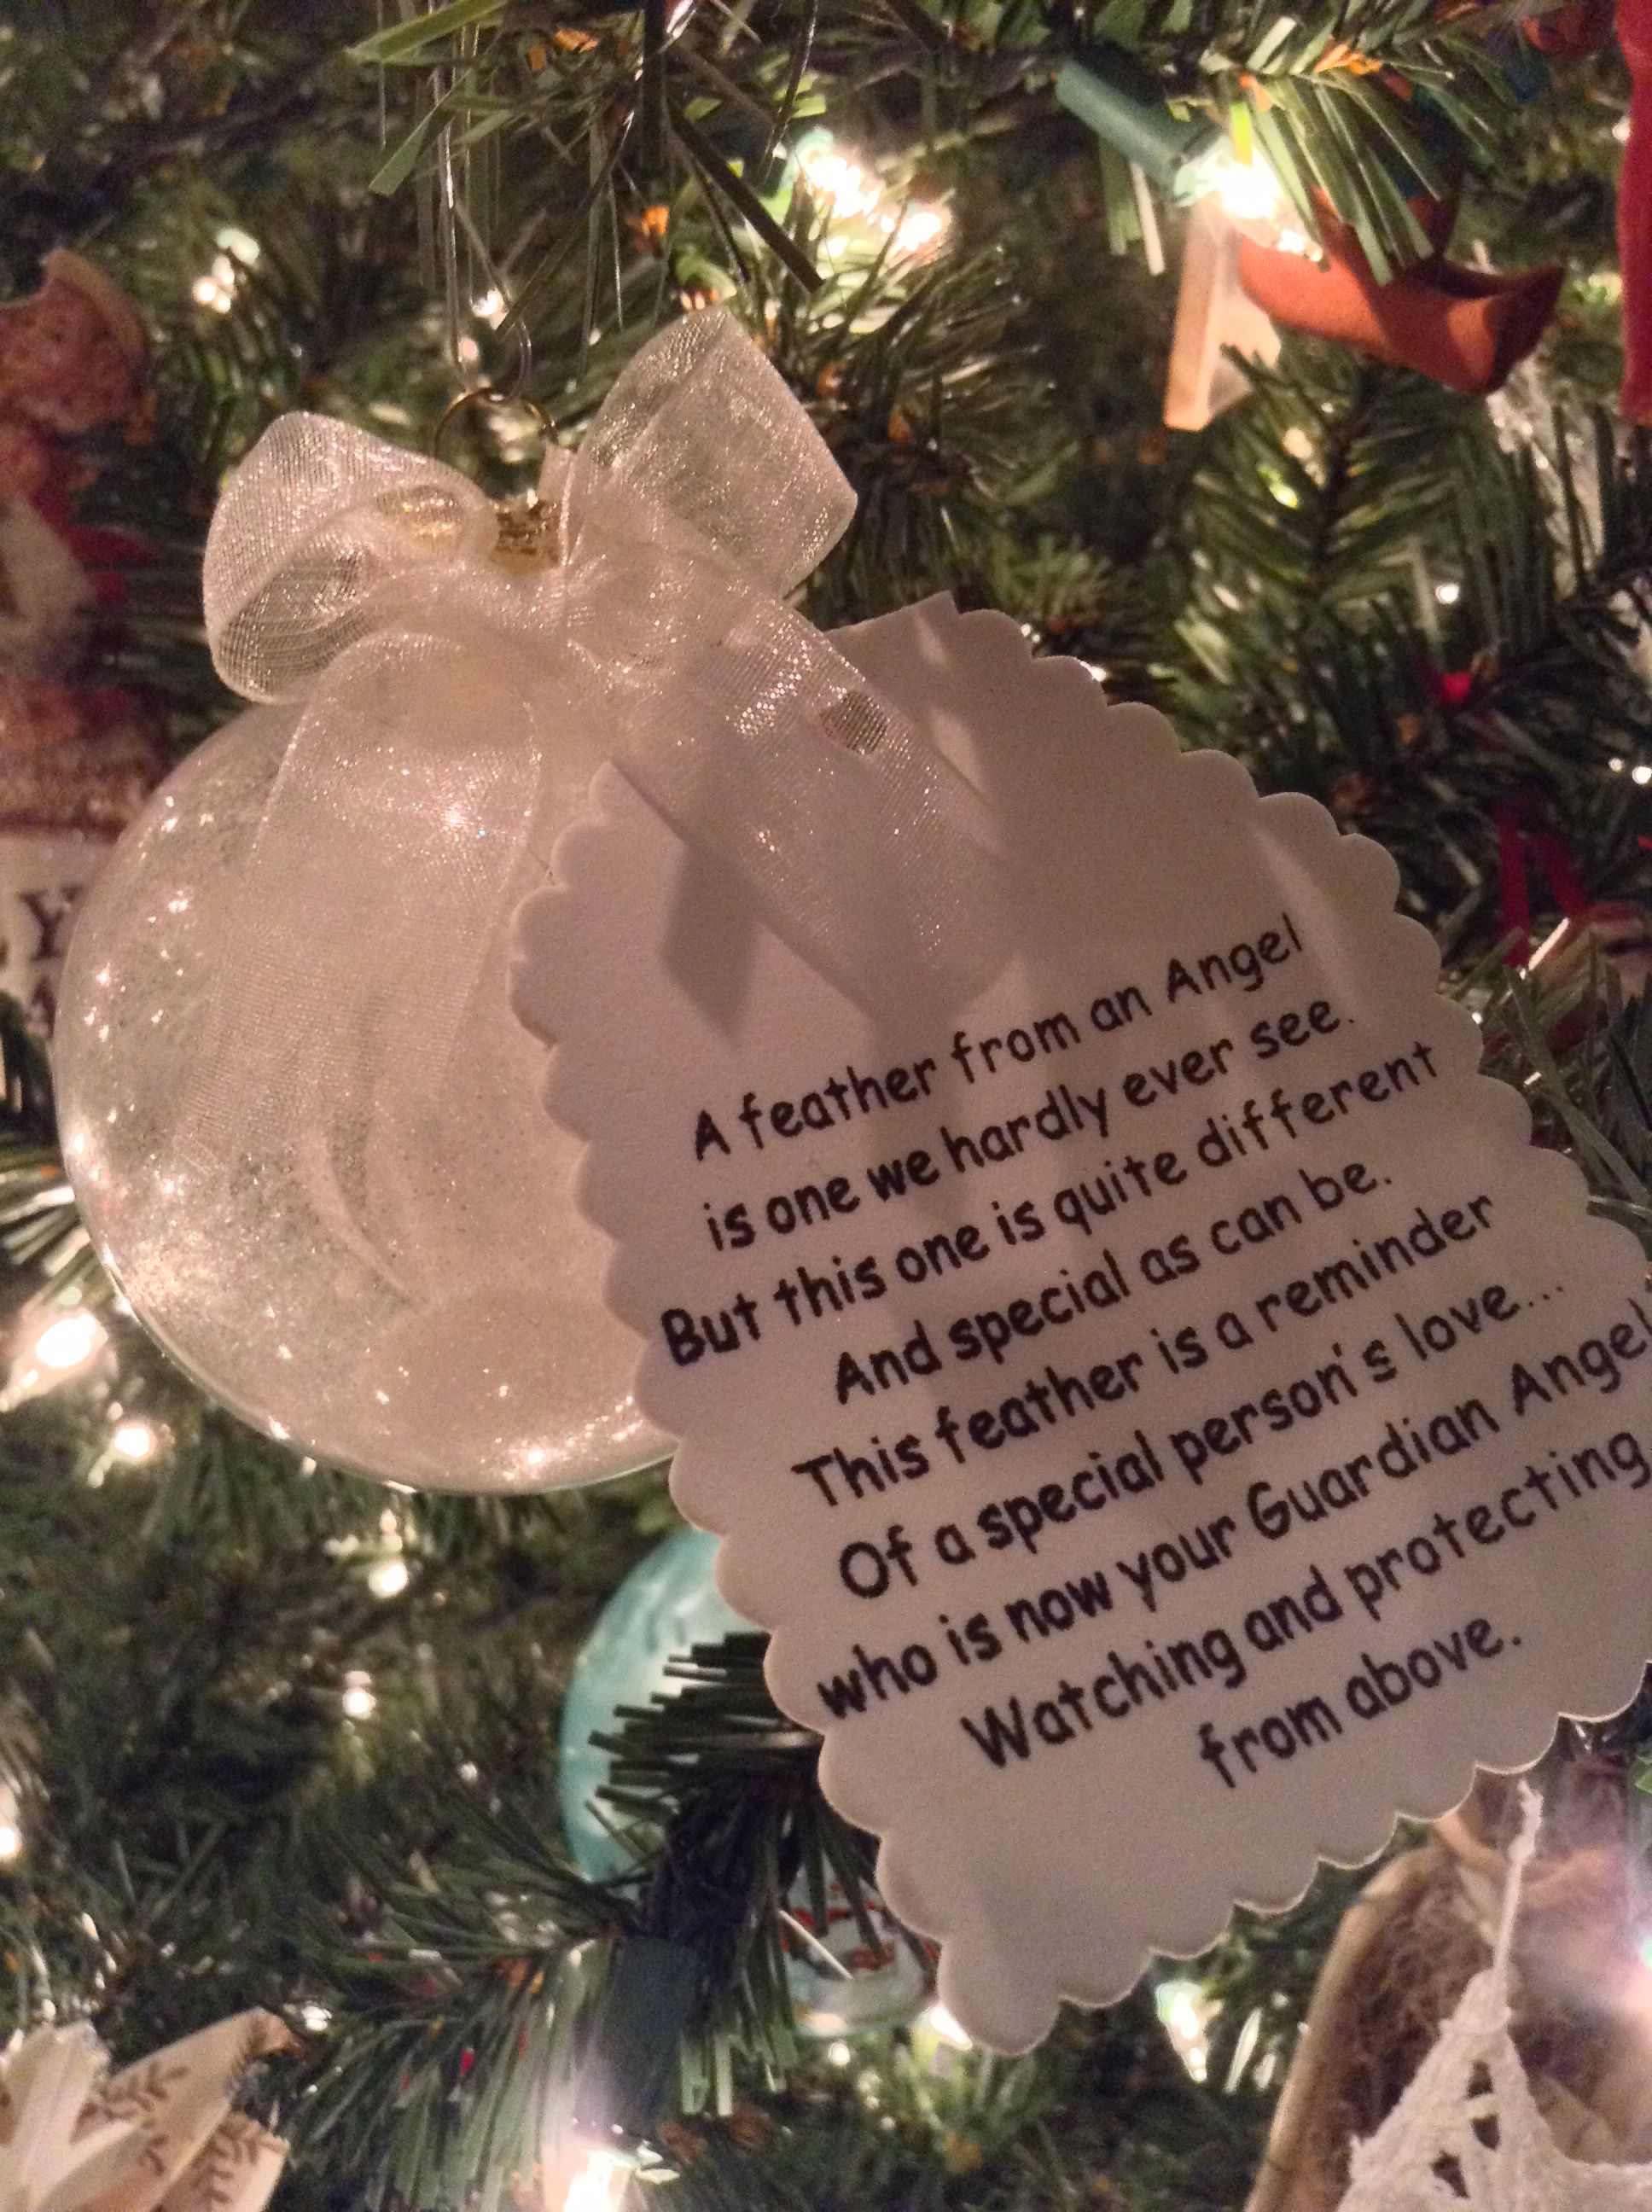 Guardian Angel Ornament Clear Ornament Filled With Some Glitter And A Single White Feather In Memory Of Love Christmas Ornaments Xmas Crafts Christmas Crafts